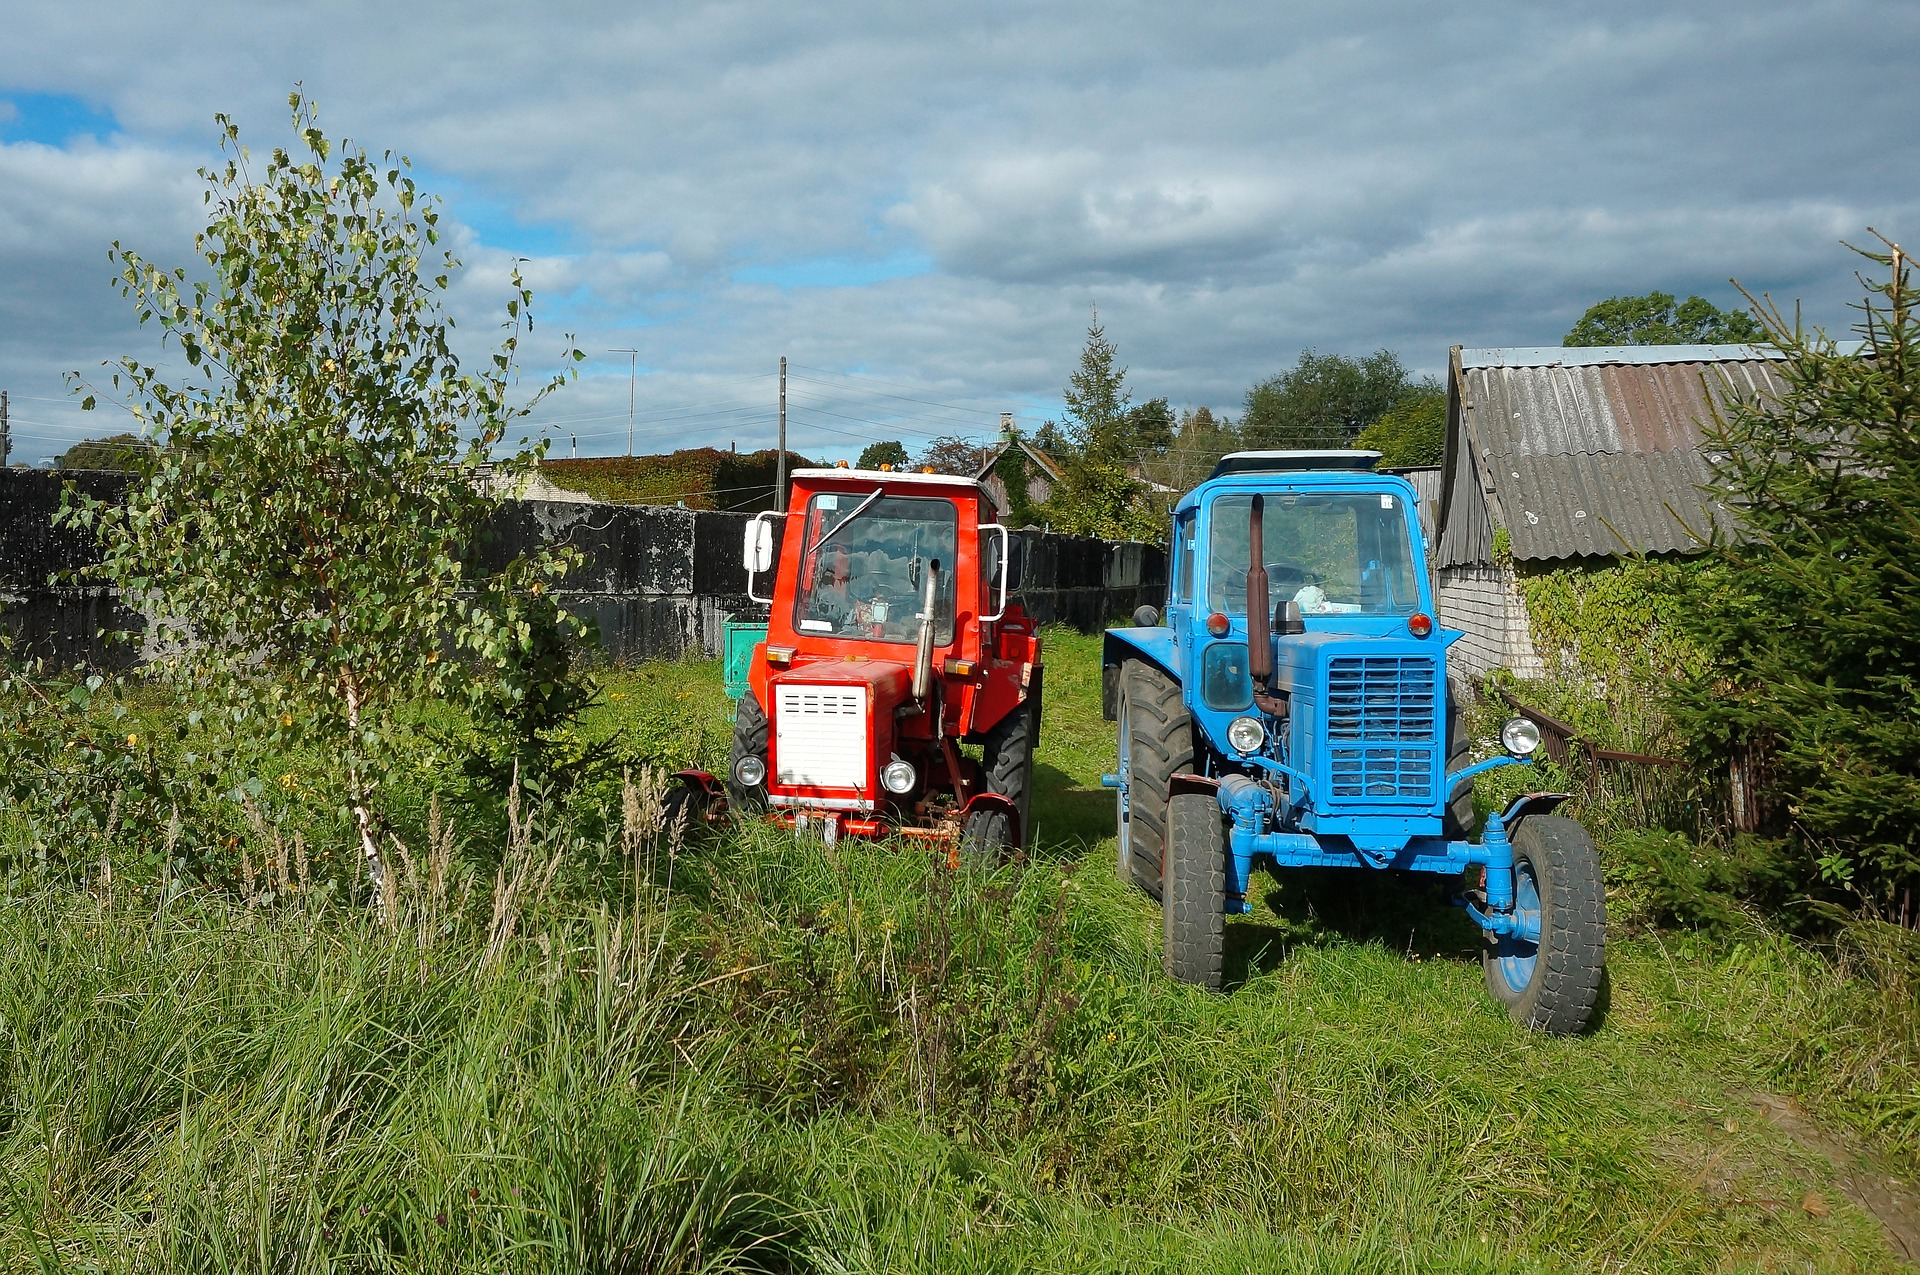 tractor-blue-3262266_1920